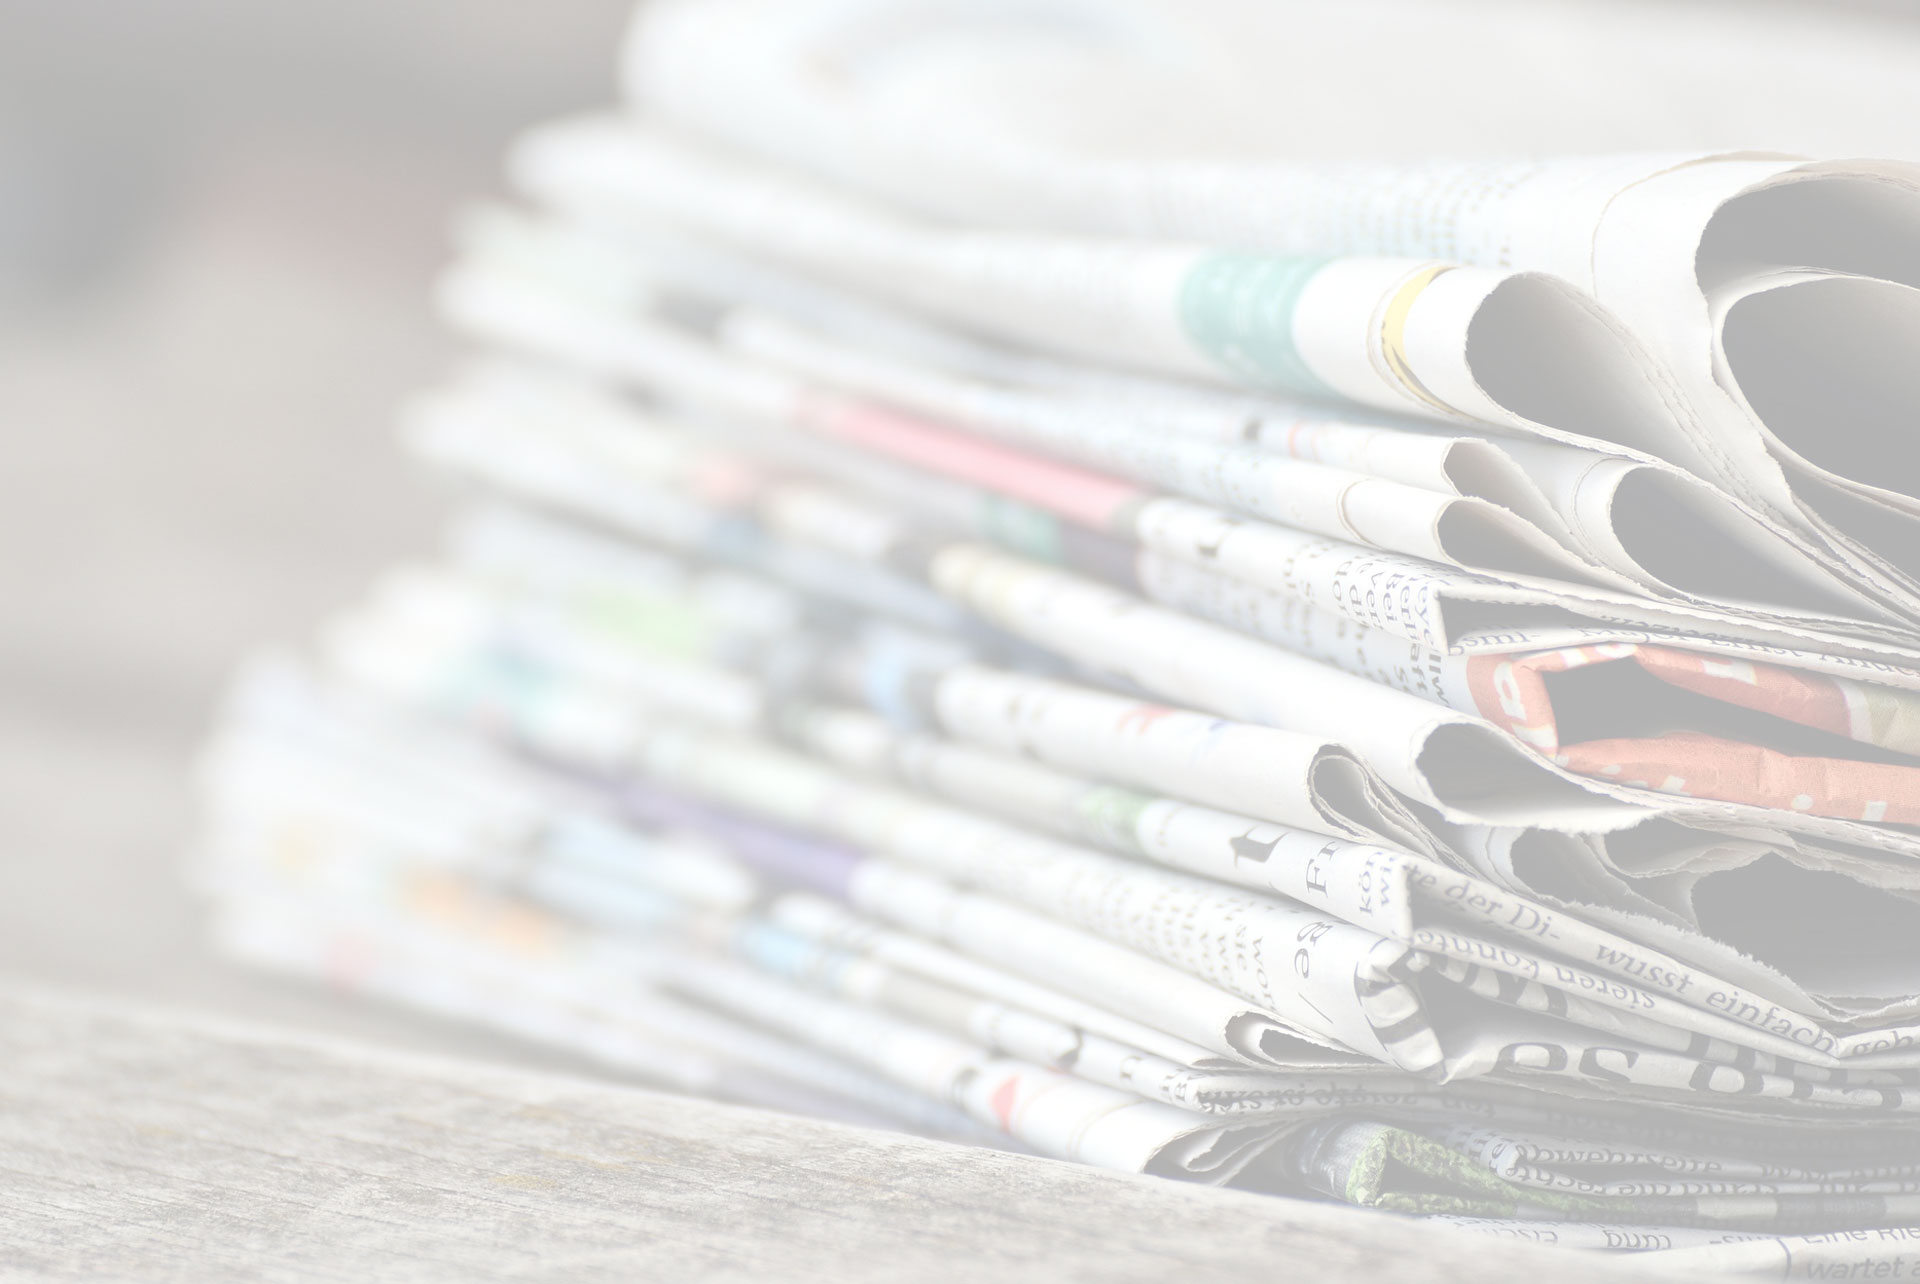 Conferenza stampa Allegri